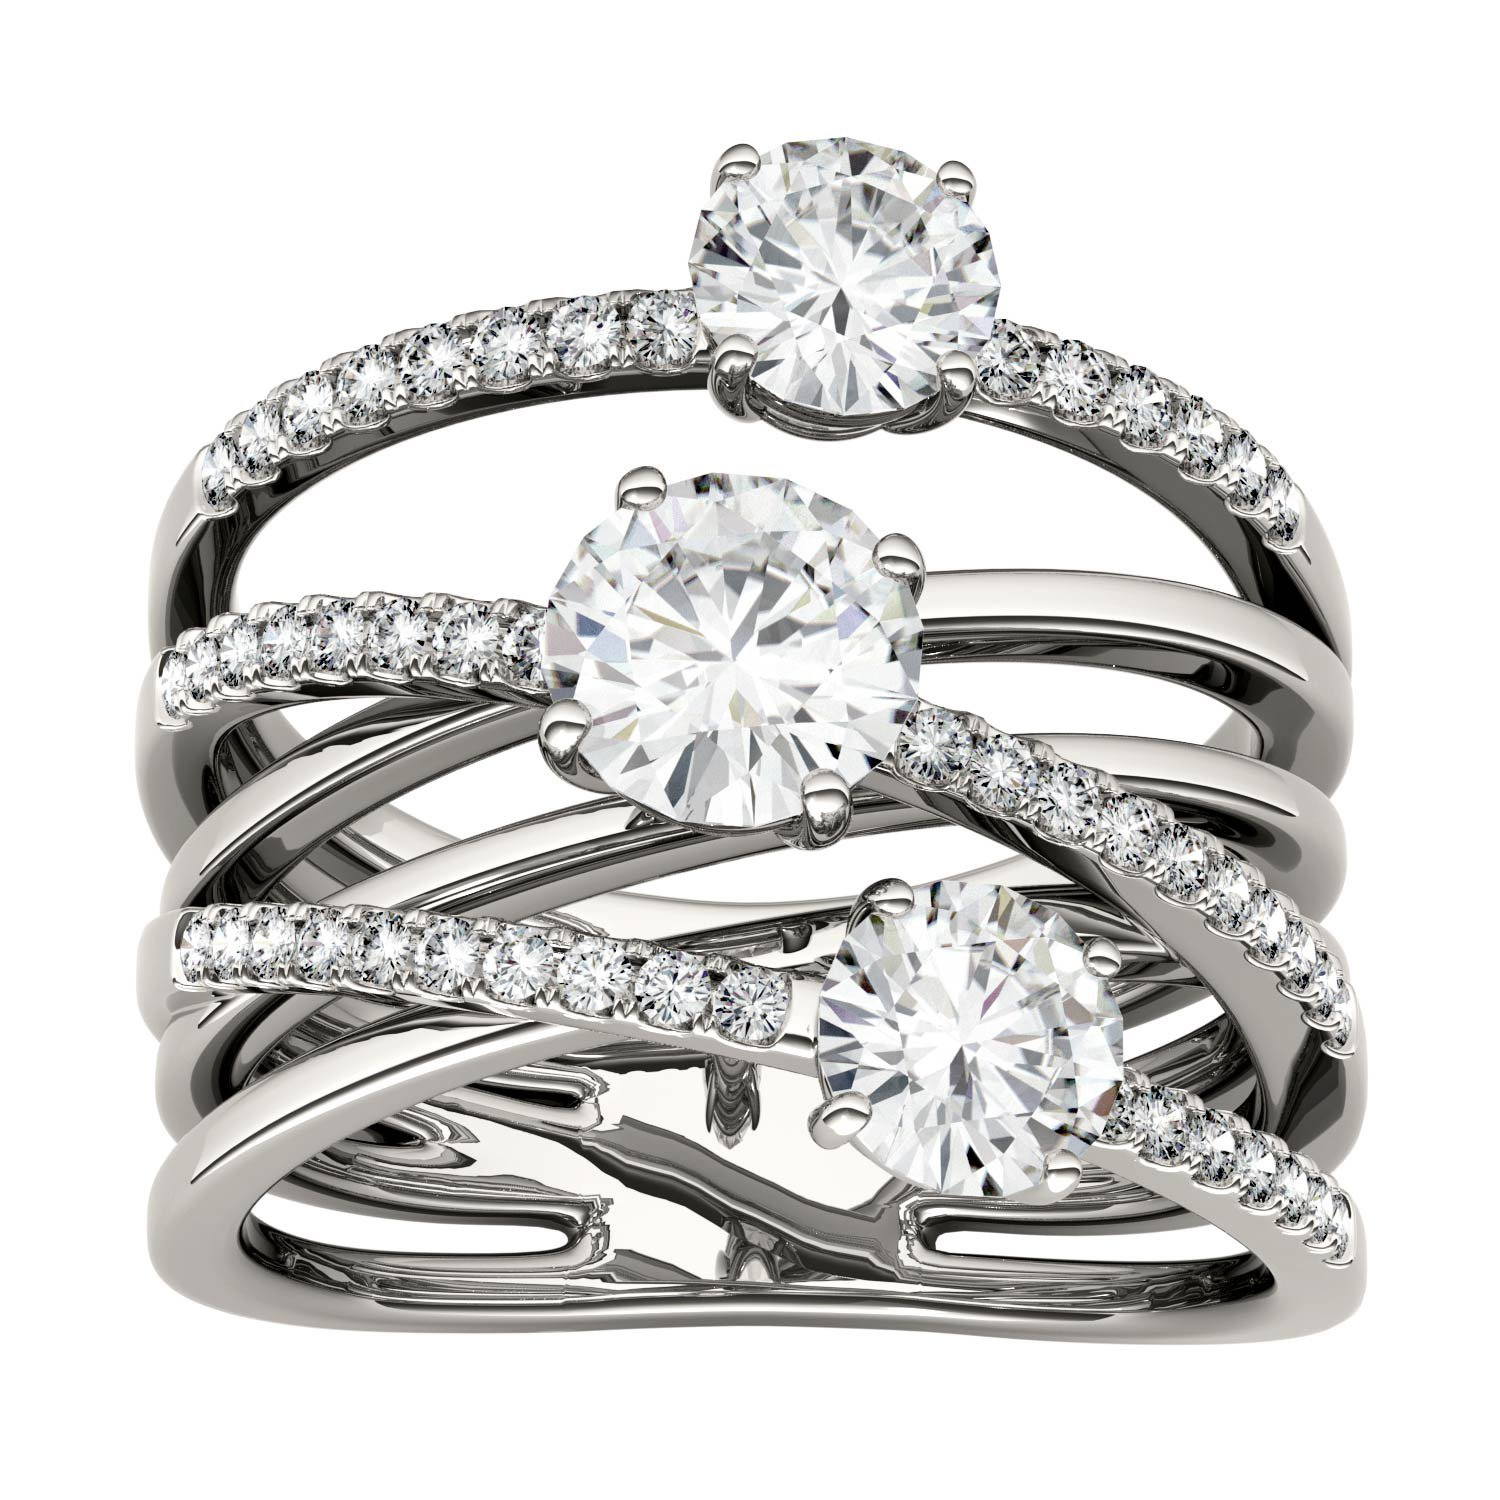 Forever Brilliant Round 6.0mm Moissanite Band Style Ring-size 6, 2.28cttw DEW By Charles & Colvard by Charles & Colvard